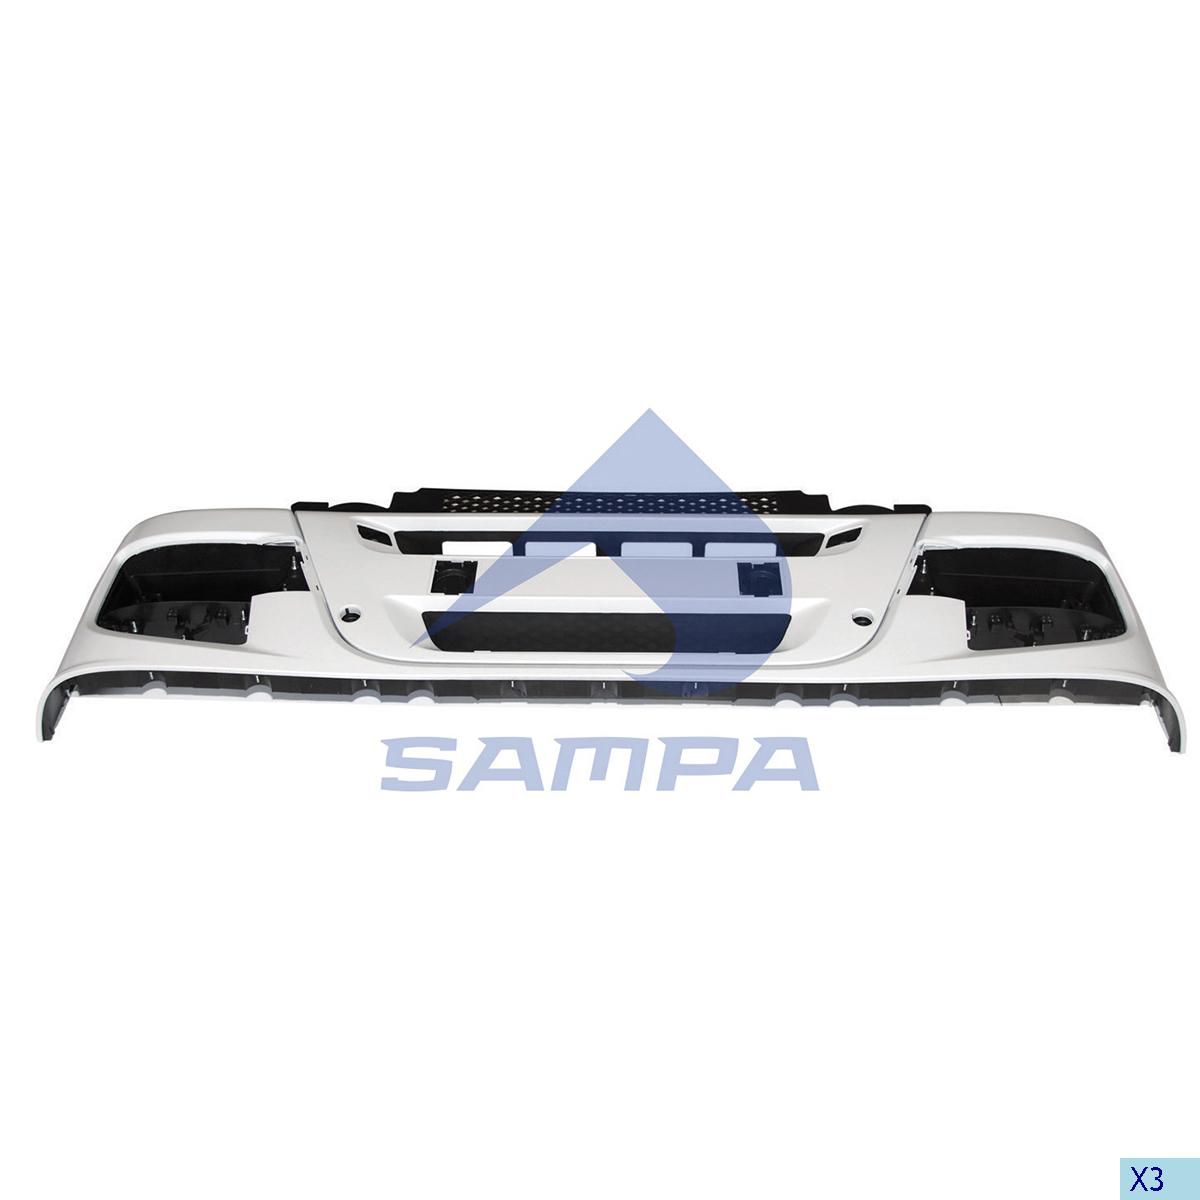 Bumper, Iveco, Chassis